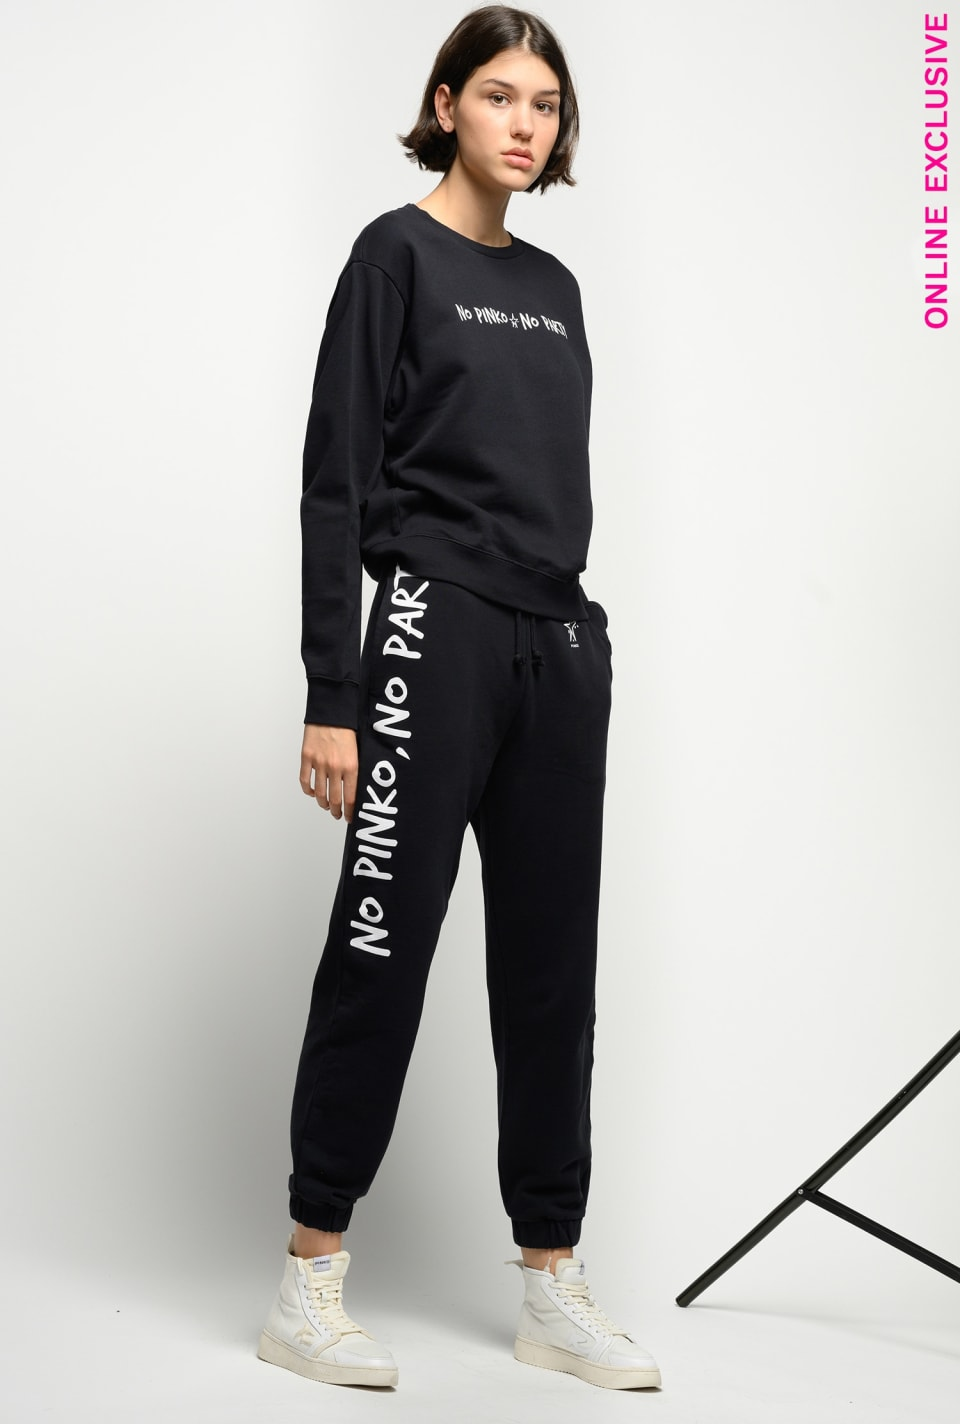 No PINKO No Party fleece joggers - Pinko